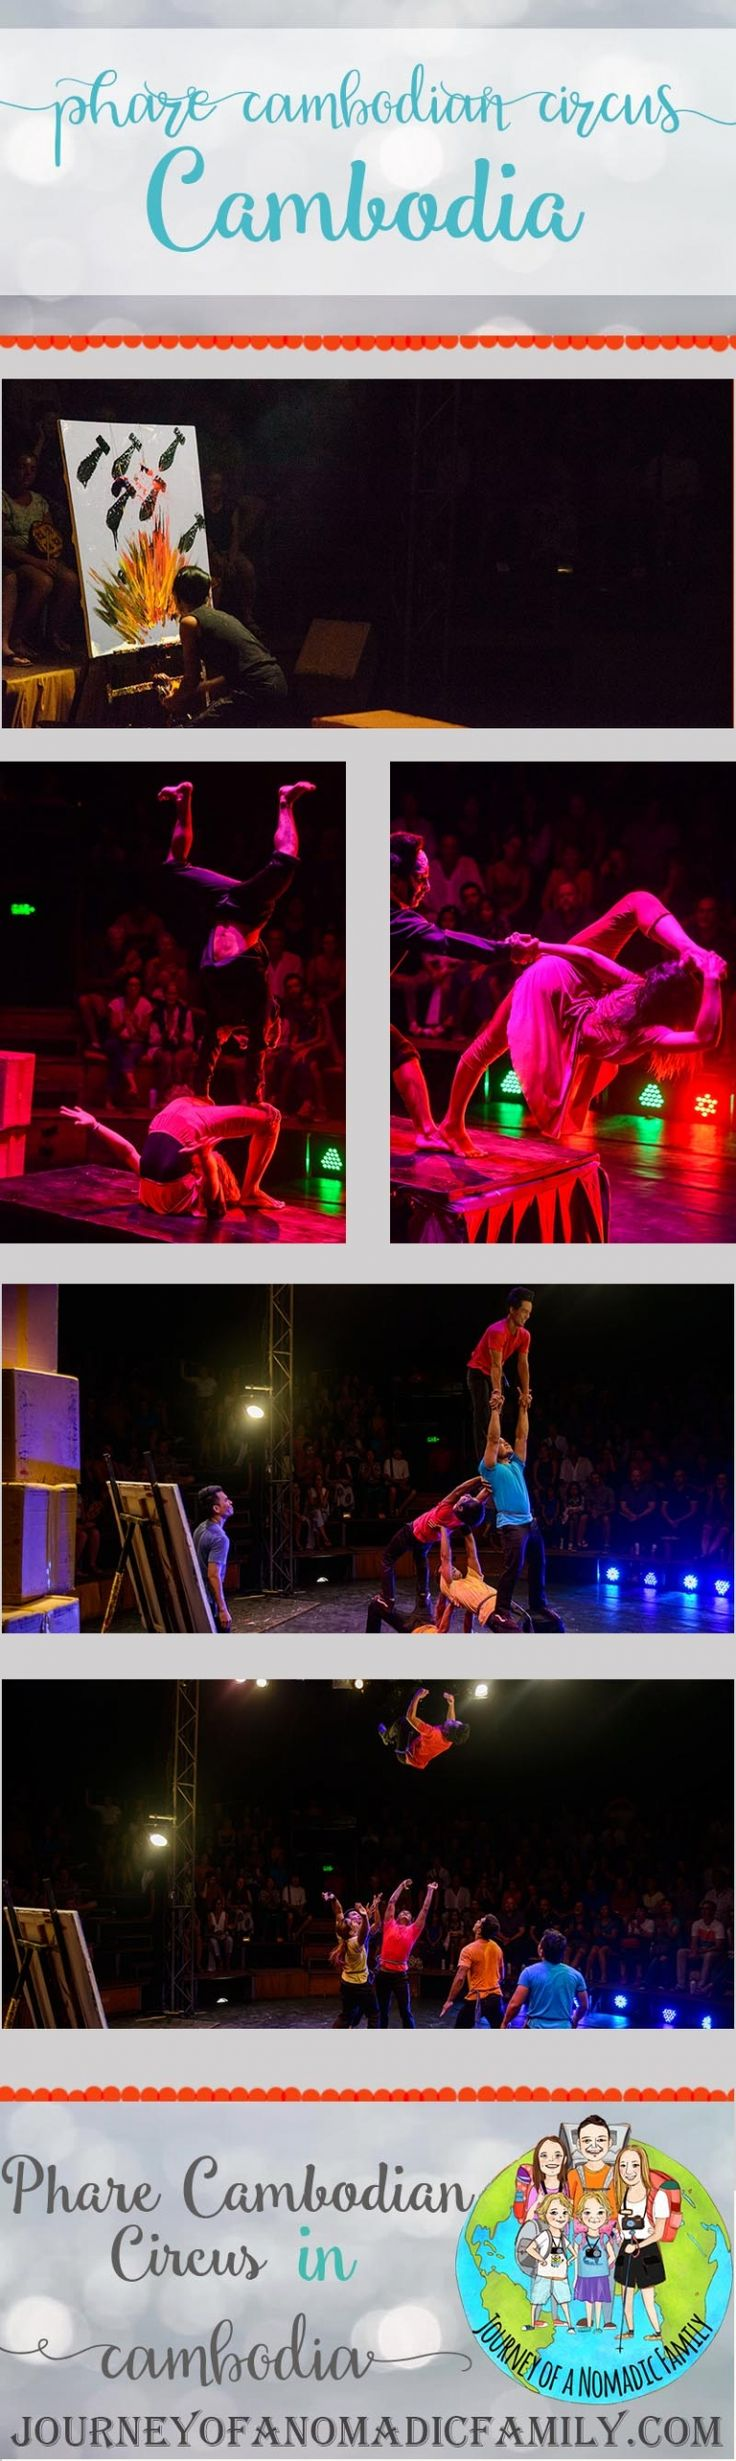 Phare Cambodian Circus is a people circus that focuses on acrobatic and musical art. It's an organisation that supports Cambodians subject to poverty by employing and training people.